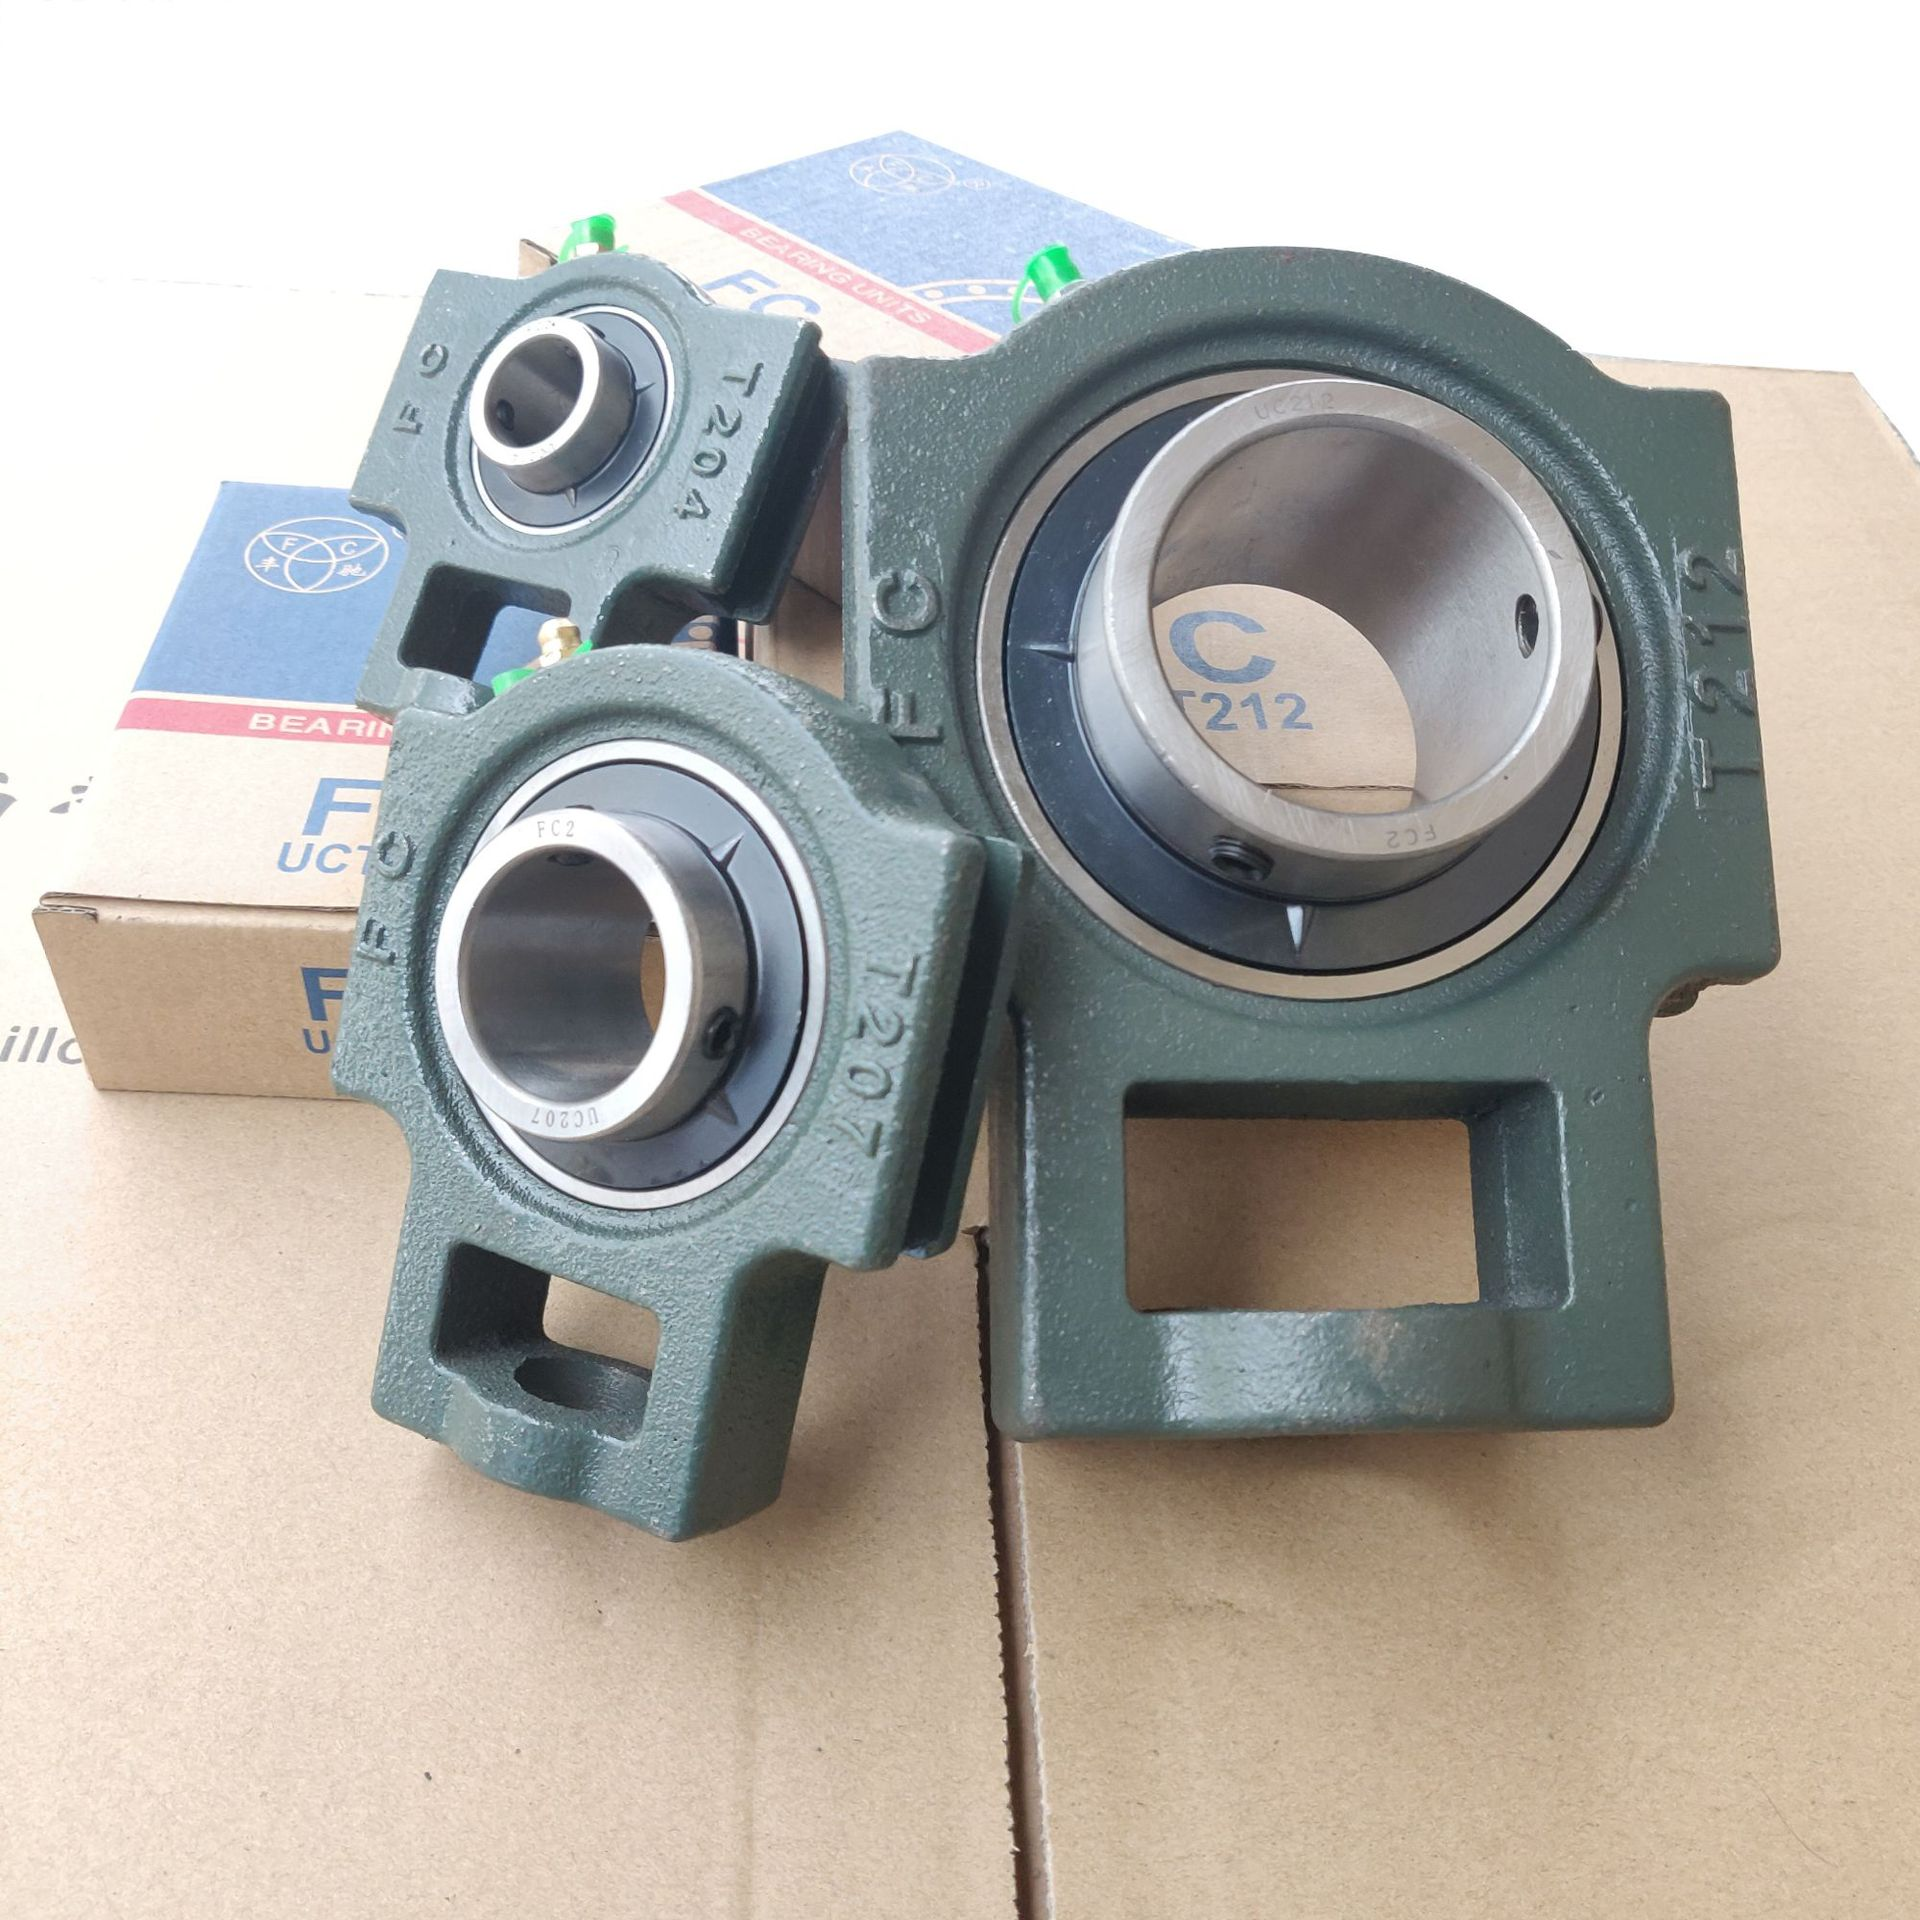 China best quality low sales price for china supplier sp210 Corrosion-Resistant Ball Bearing Housed Units Factory Manufacturer and Supplier -from Pto-shaft.com